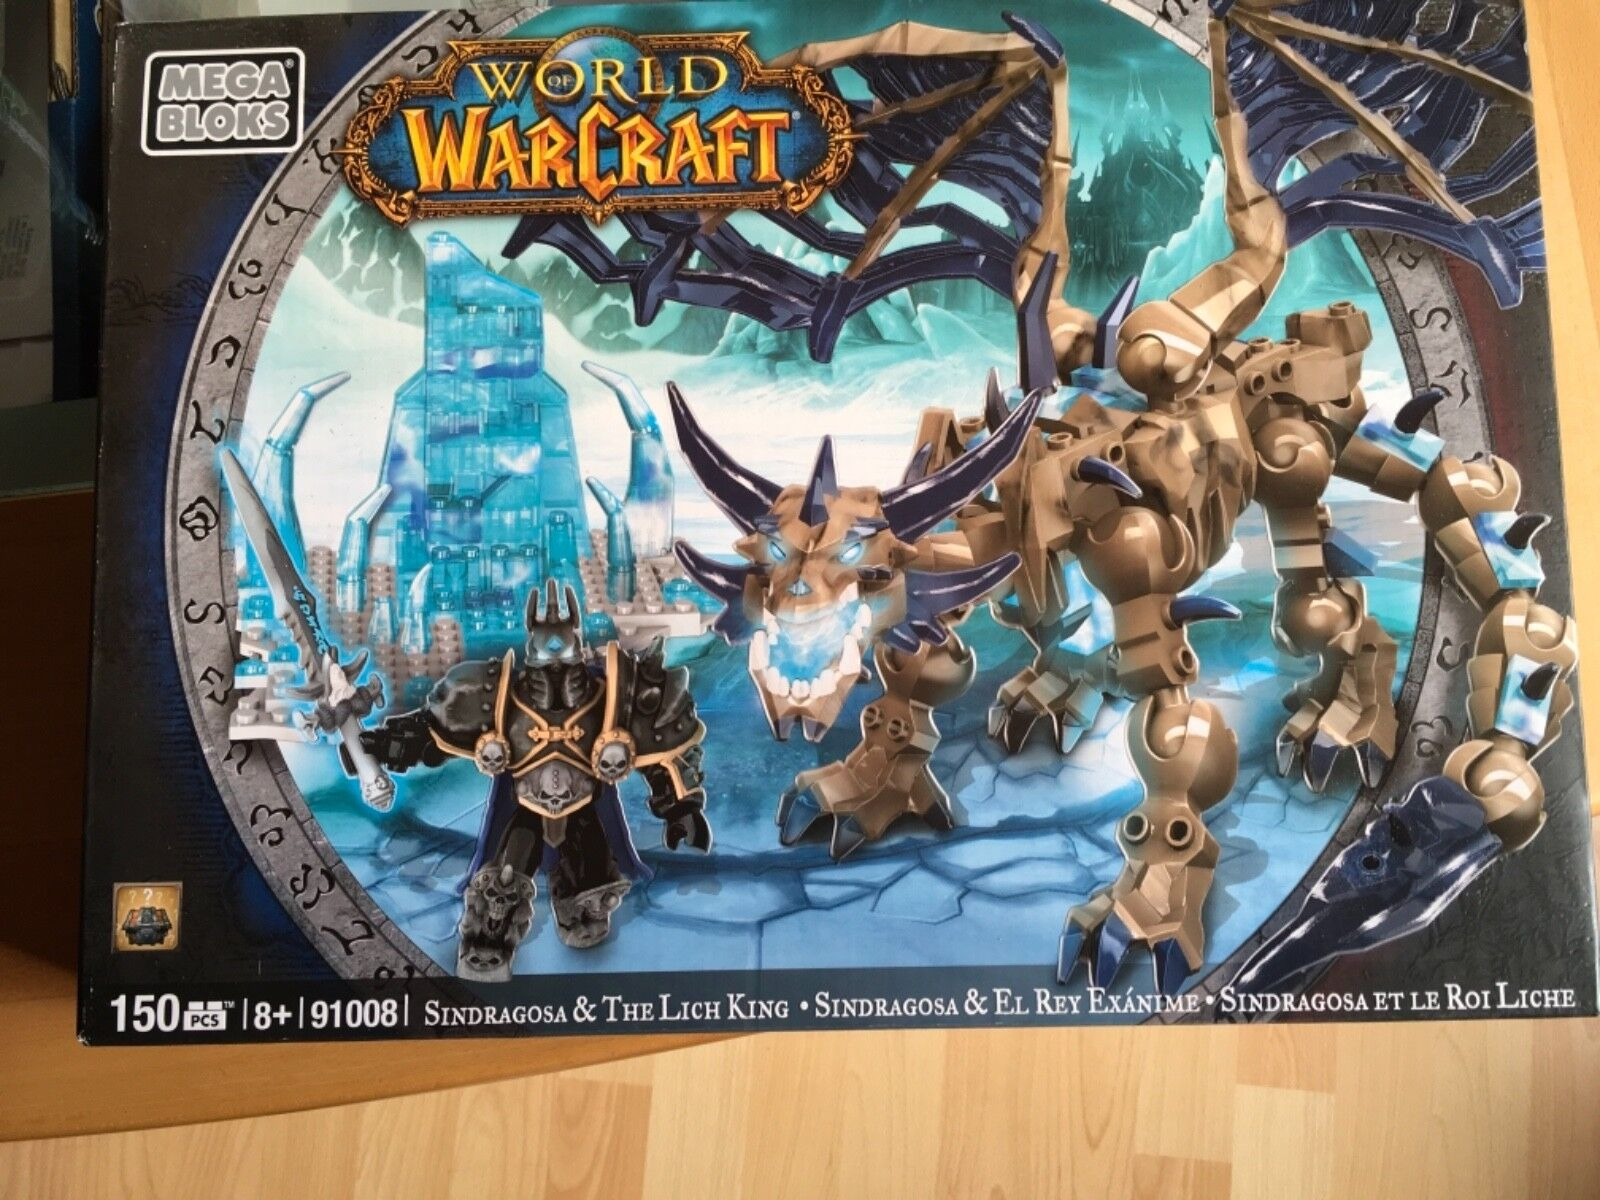 Mega Bloks World of Warcraft Singragosa & The Lich King Neu Rarität